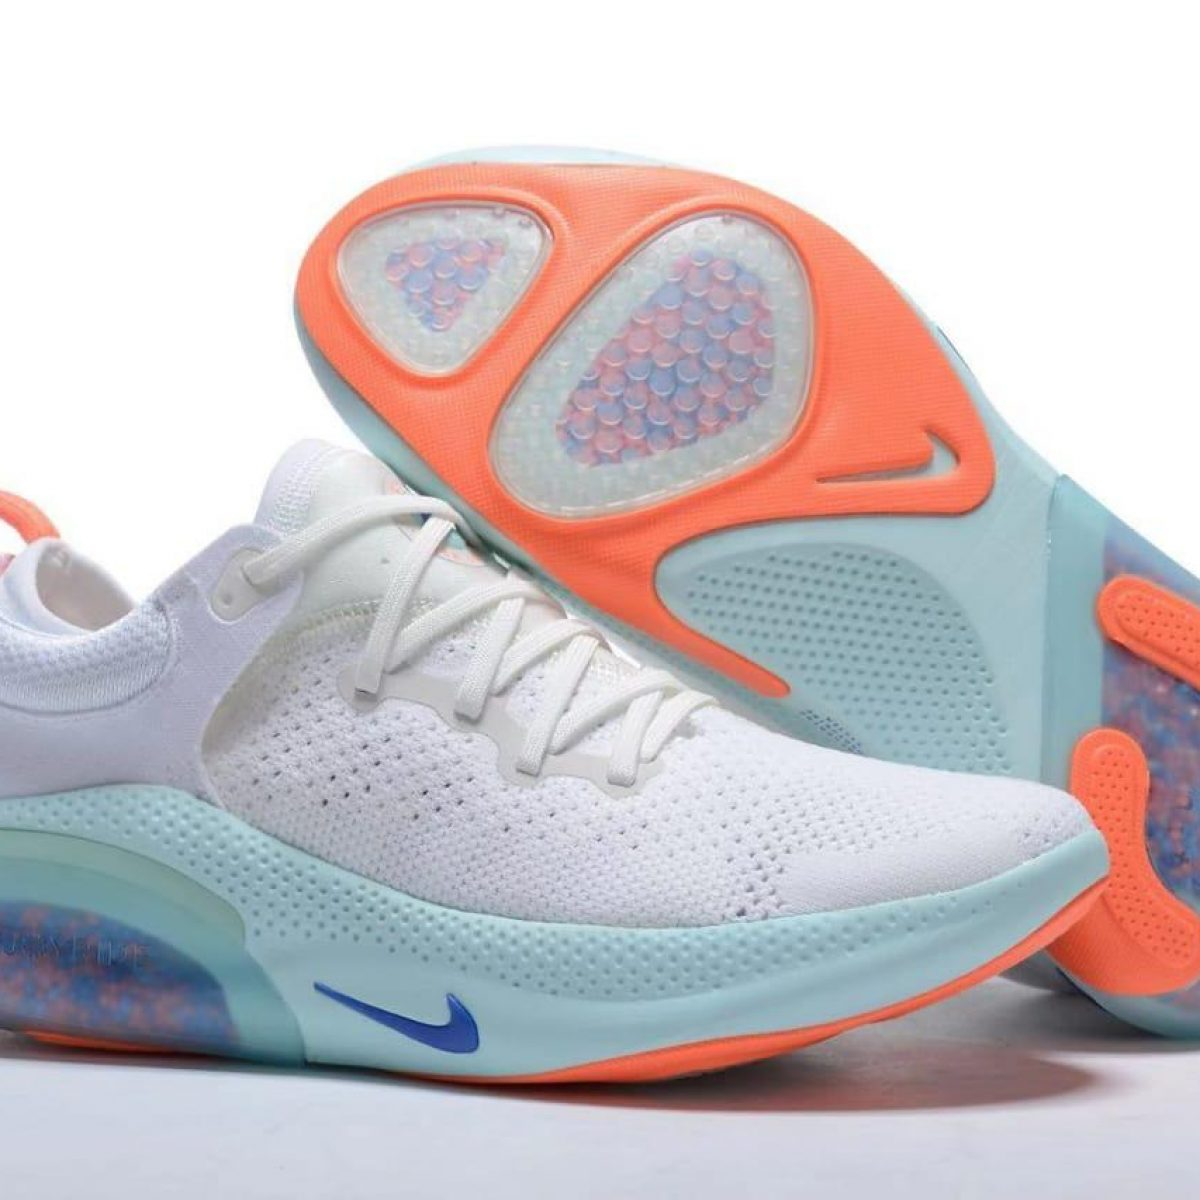 Nike Joyride Shoes (White)